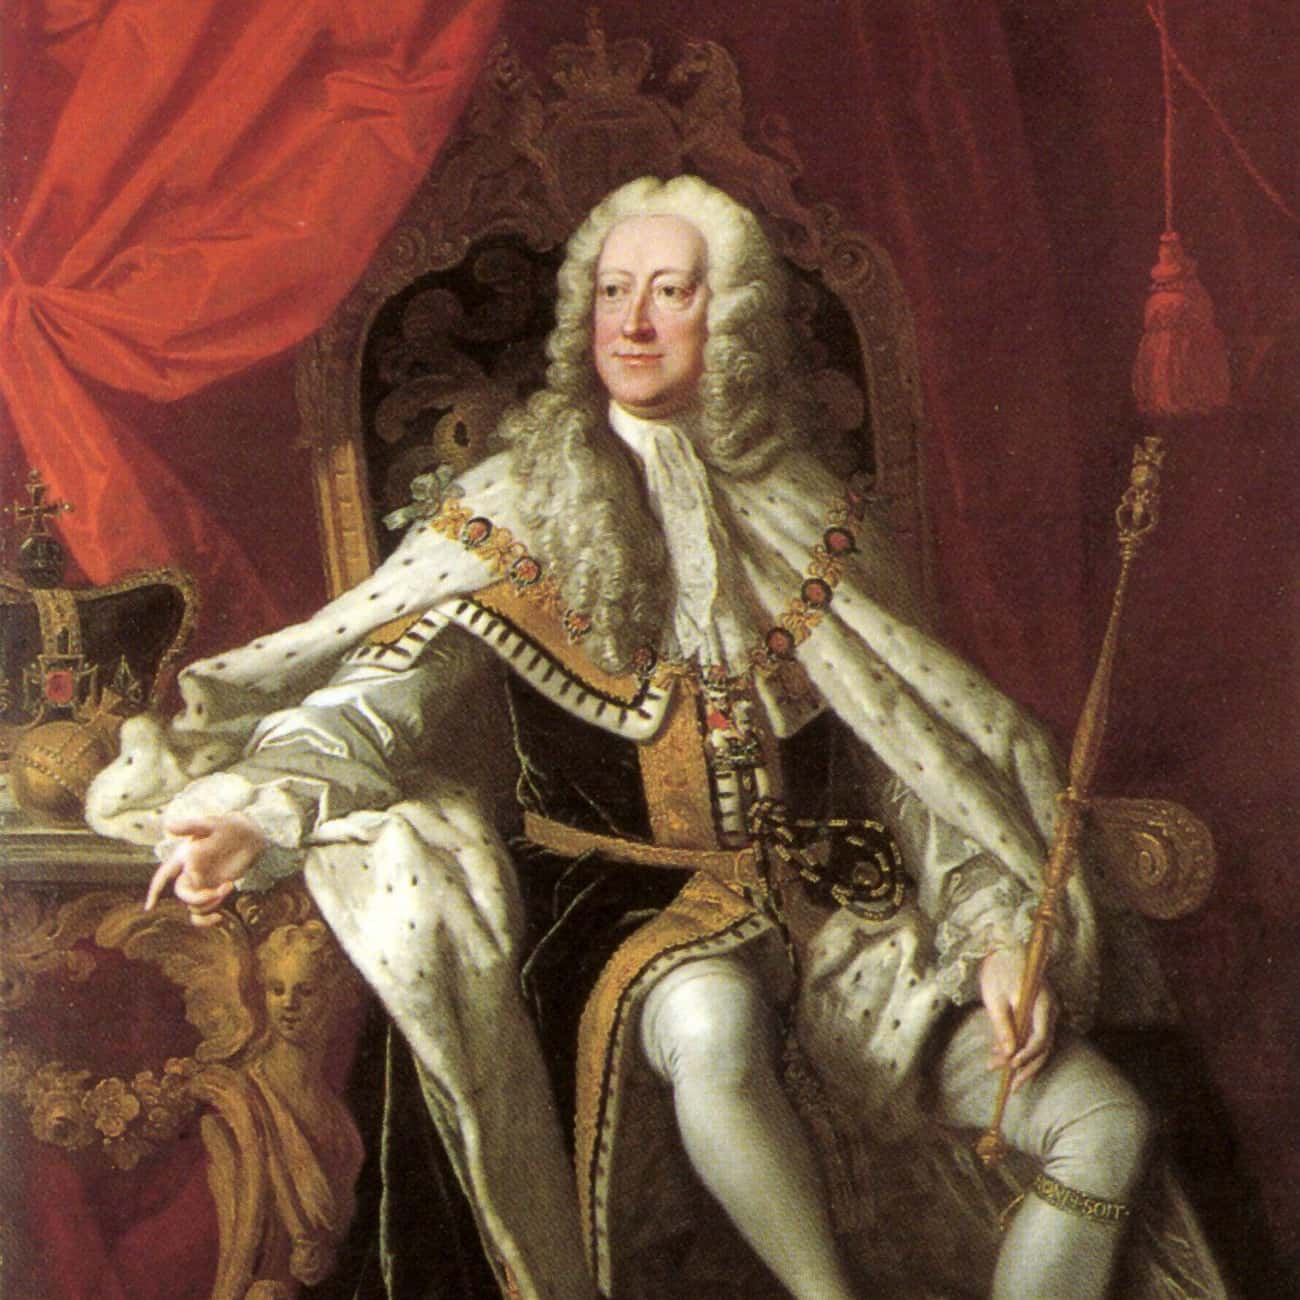 George II Kicked The Bucket Wh is listed (or ranked) 4 on the list The Stupidest, Least Dignified Ways Royals Have Died